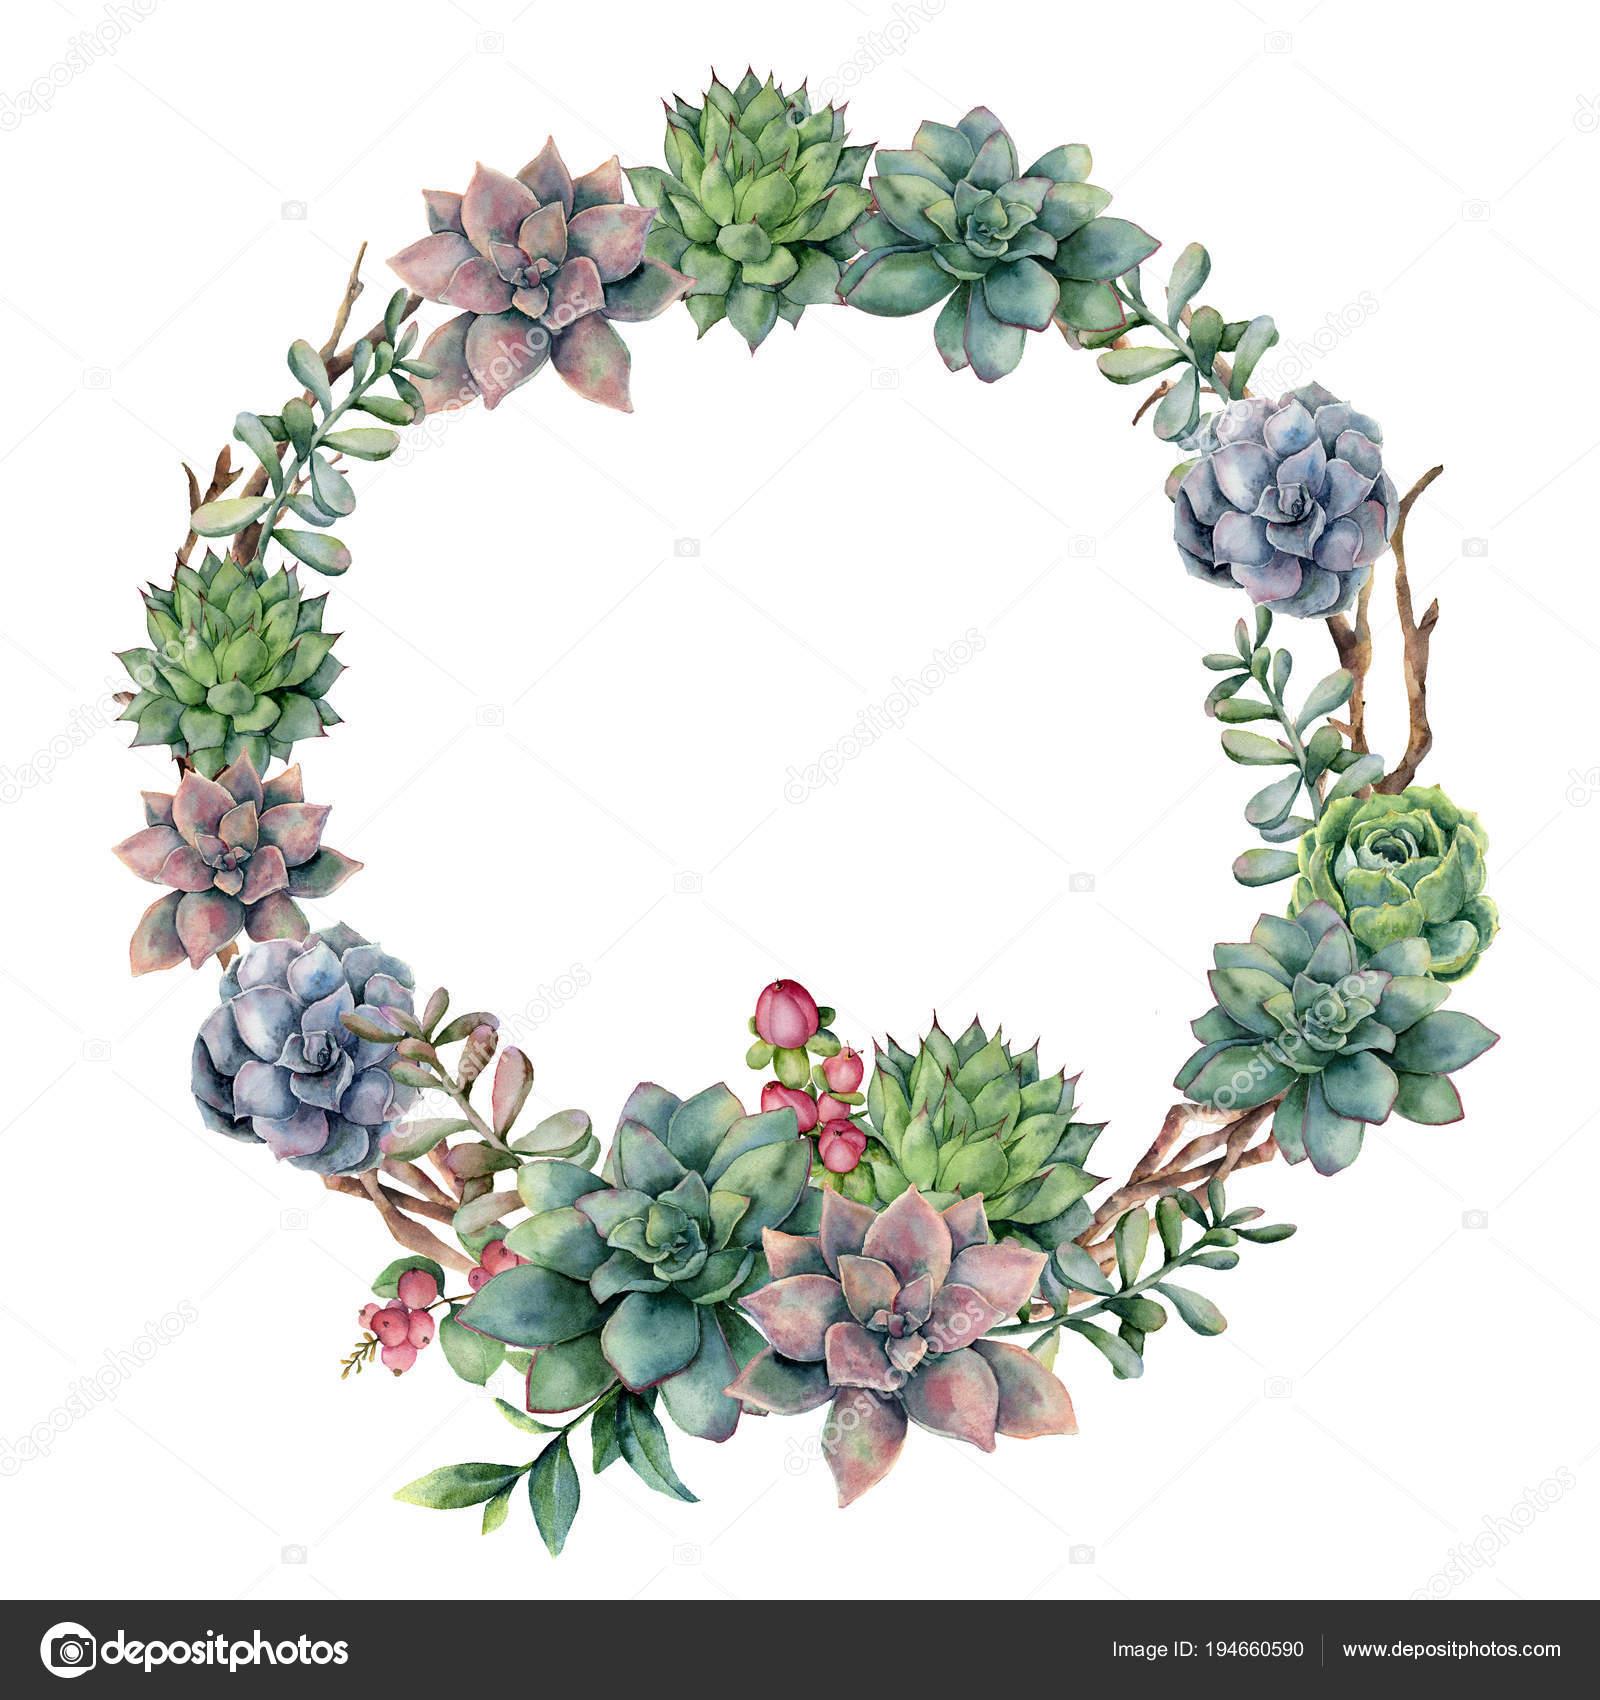 Pictures Eucalyptus Varieties Watercolor Succulent And Berries Wreath Hand Painted Succulent Red Berry And Eucalyptus Leaves On White Background Floral Illustration For Design Print Fabric Or Background Stock Photo C Derbisheva 194660590